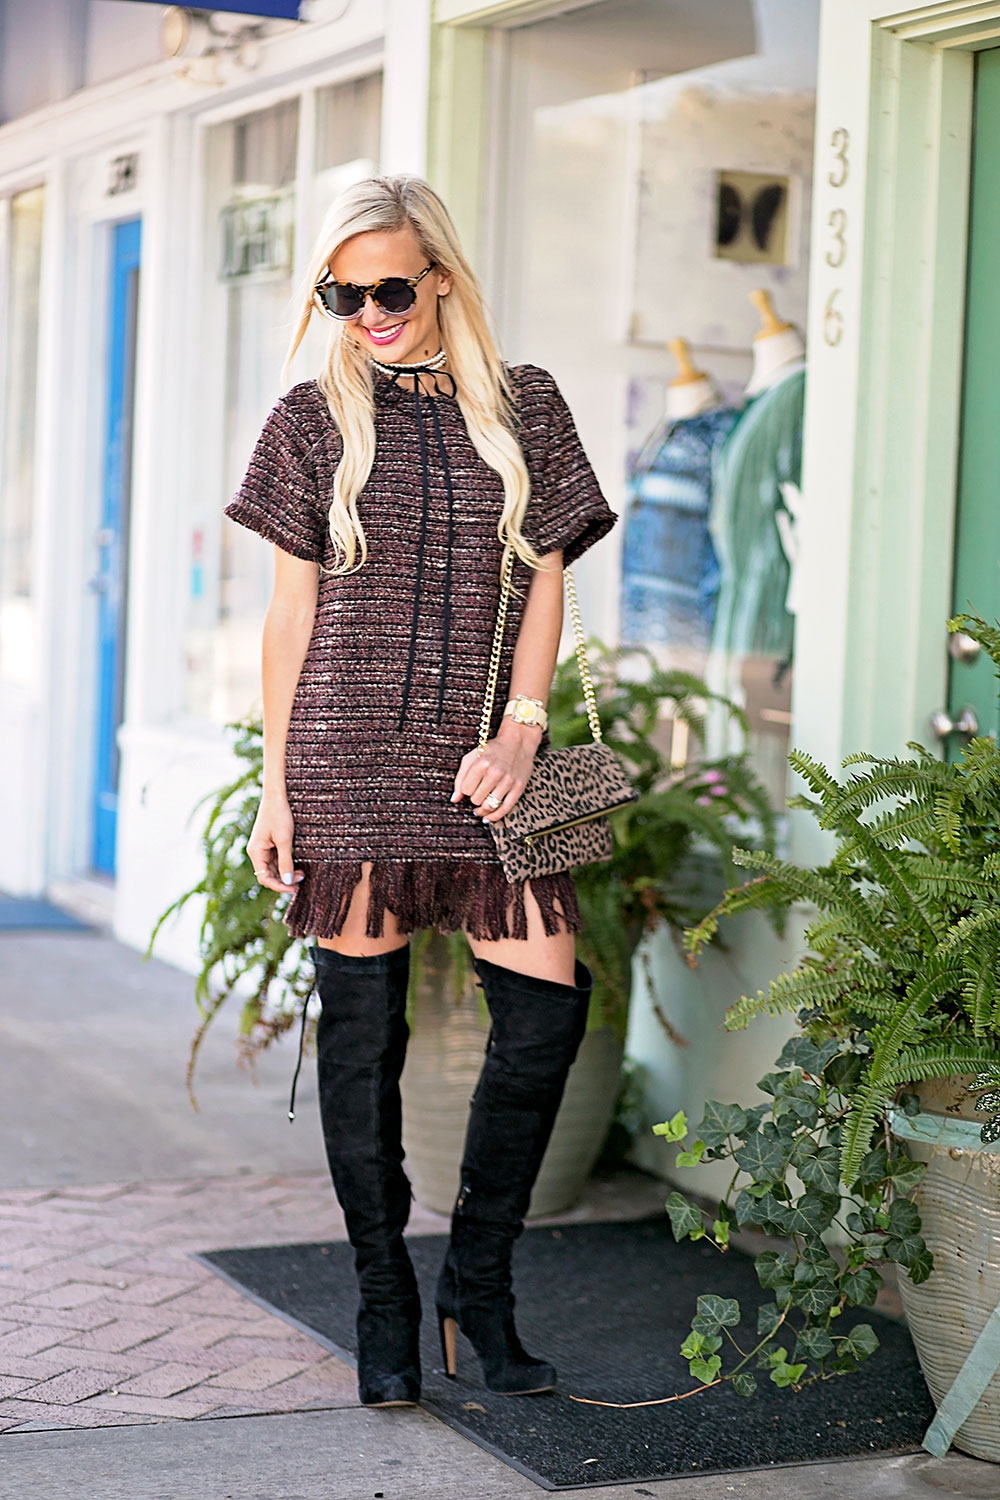 vandi-fair-blog-lauren-vandiver-dallas-texas-southern-fashion-blogger-astr-margo-fringe-shift-hem-dress-wine-over-the-knee-black-boots-4